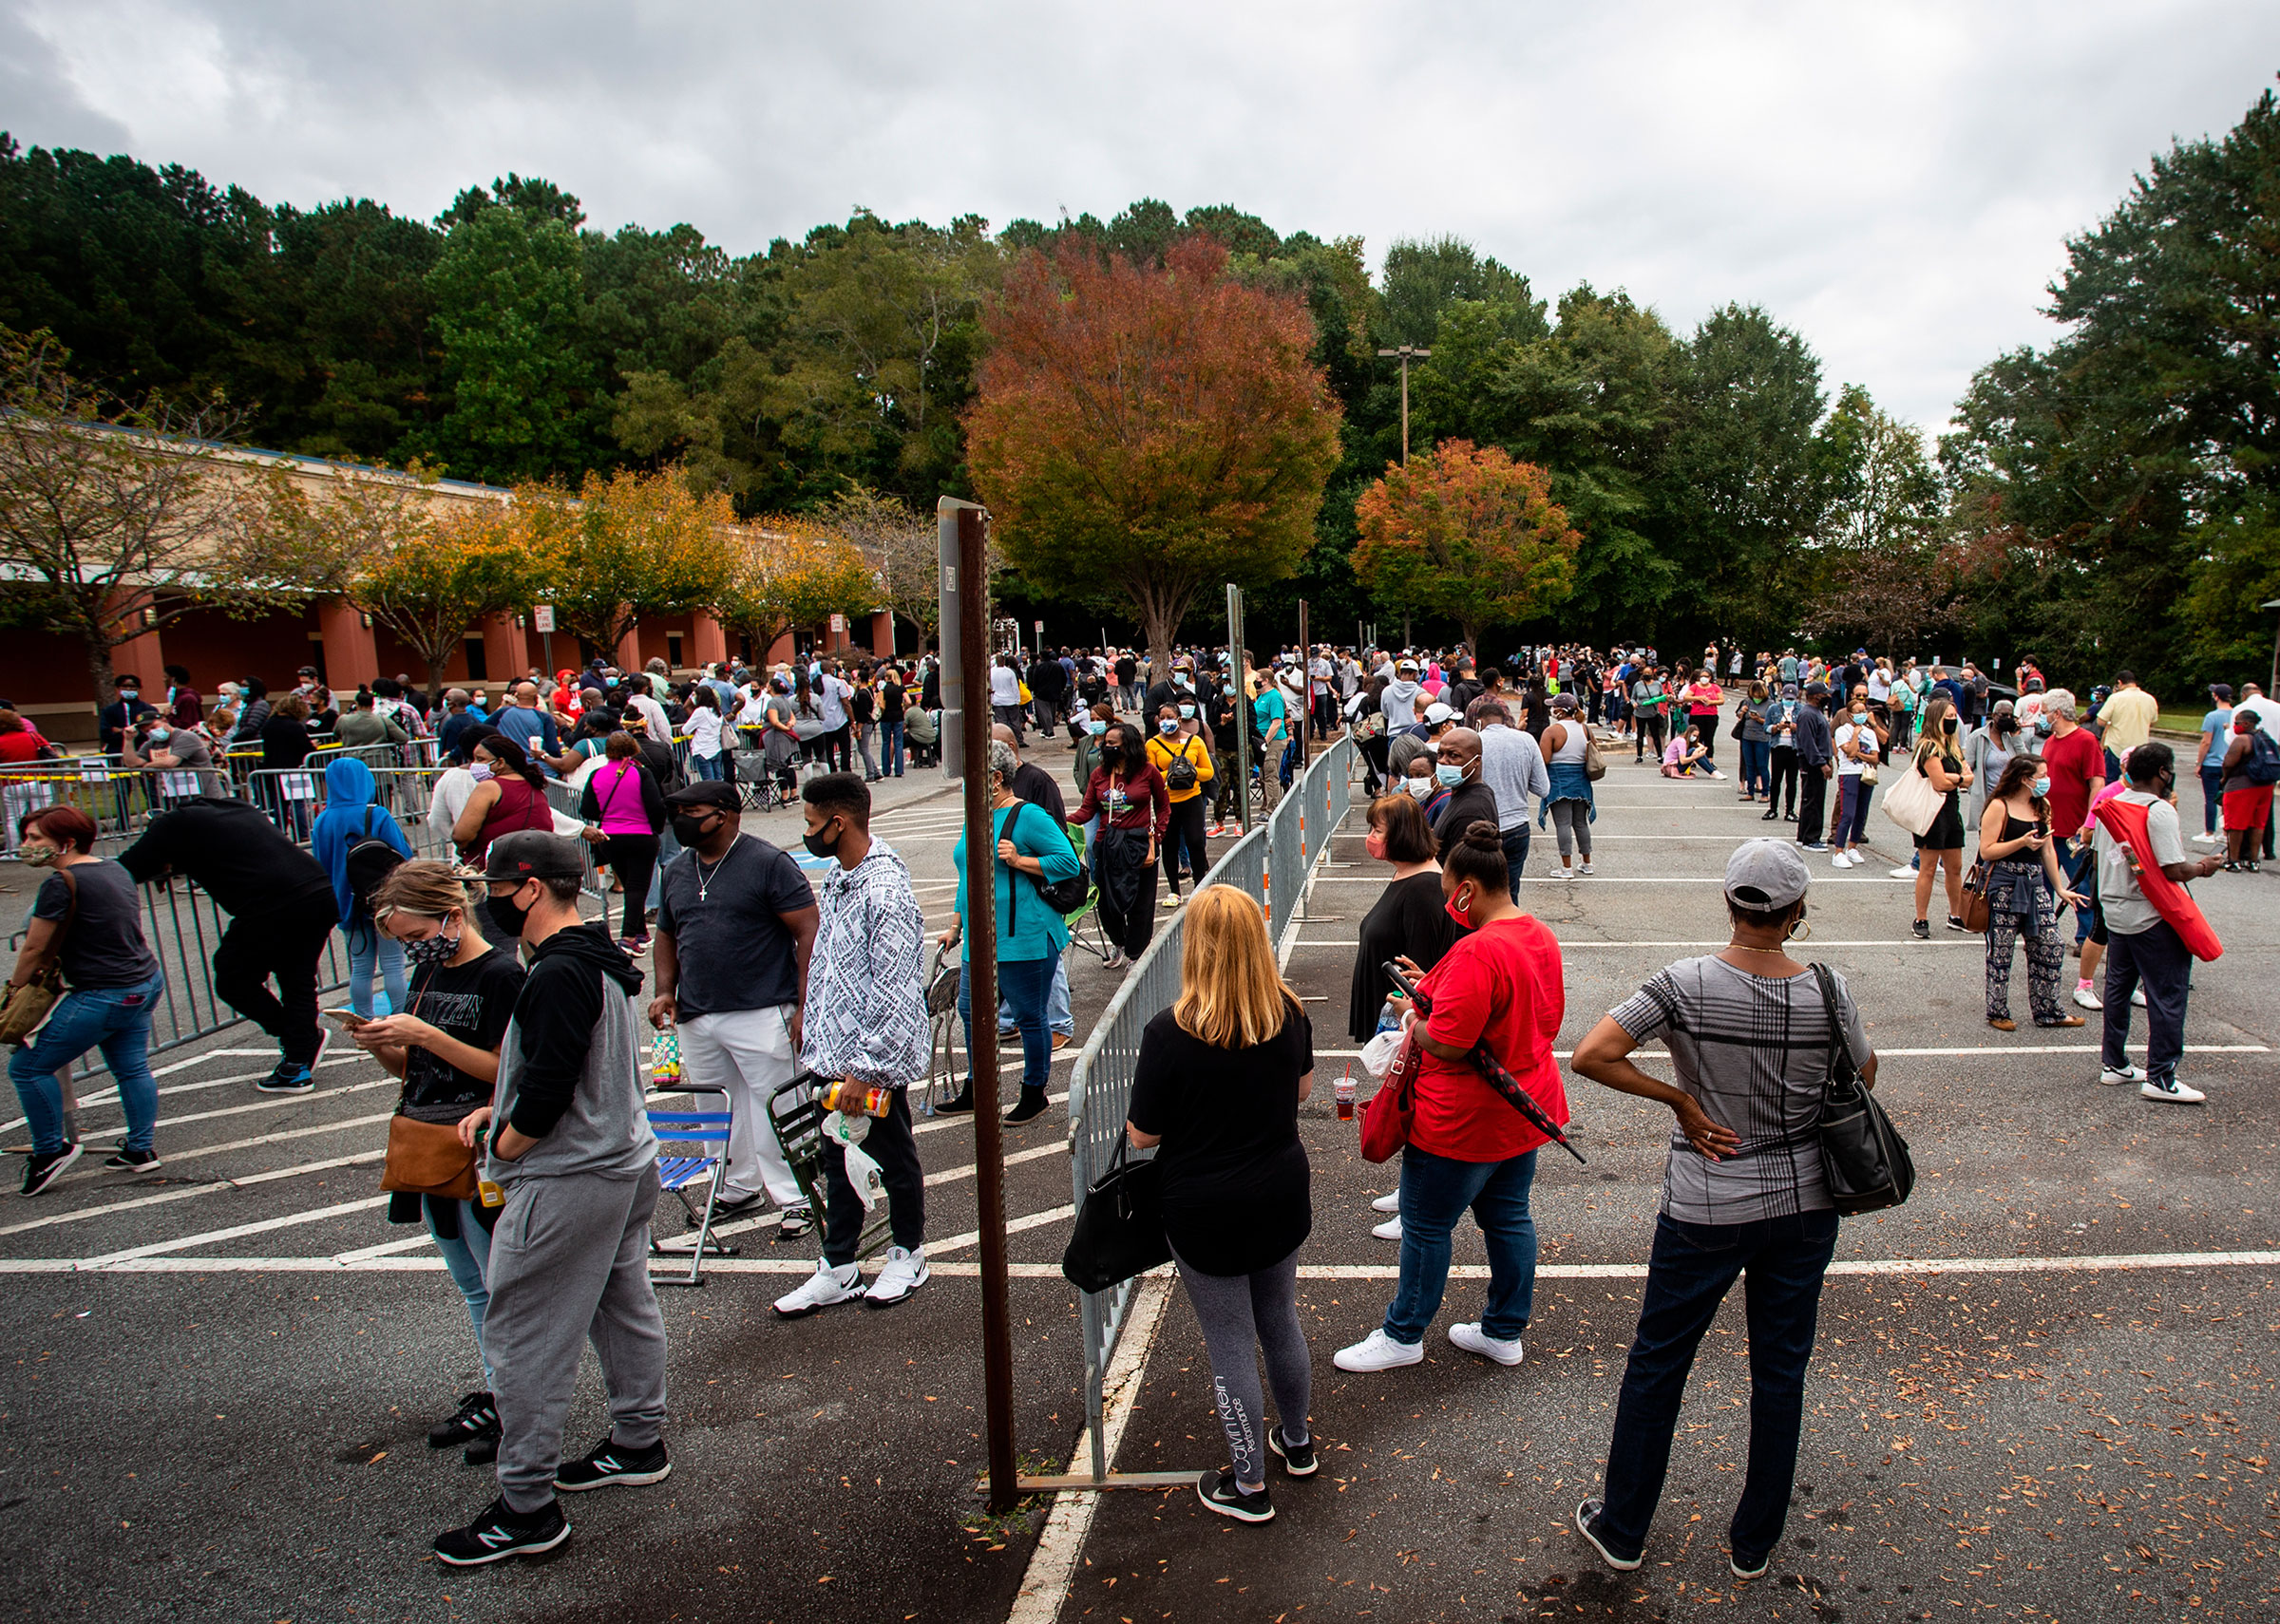 People in Marietta, Georgia, wait in line to vote on October 12.